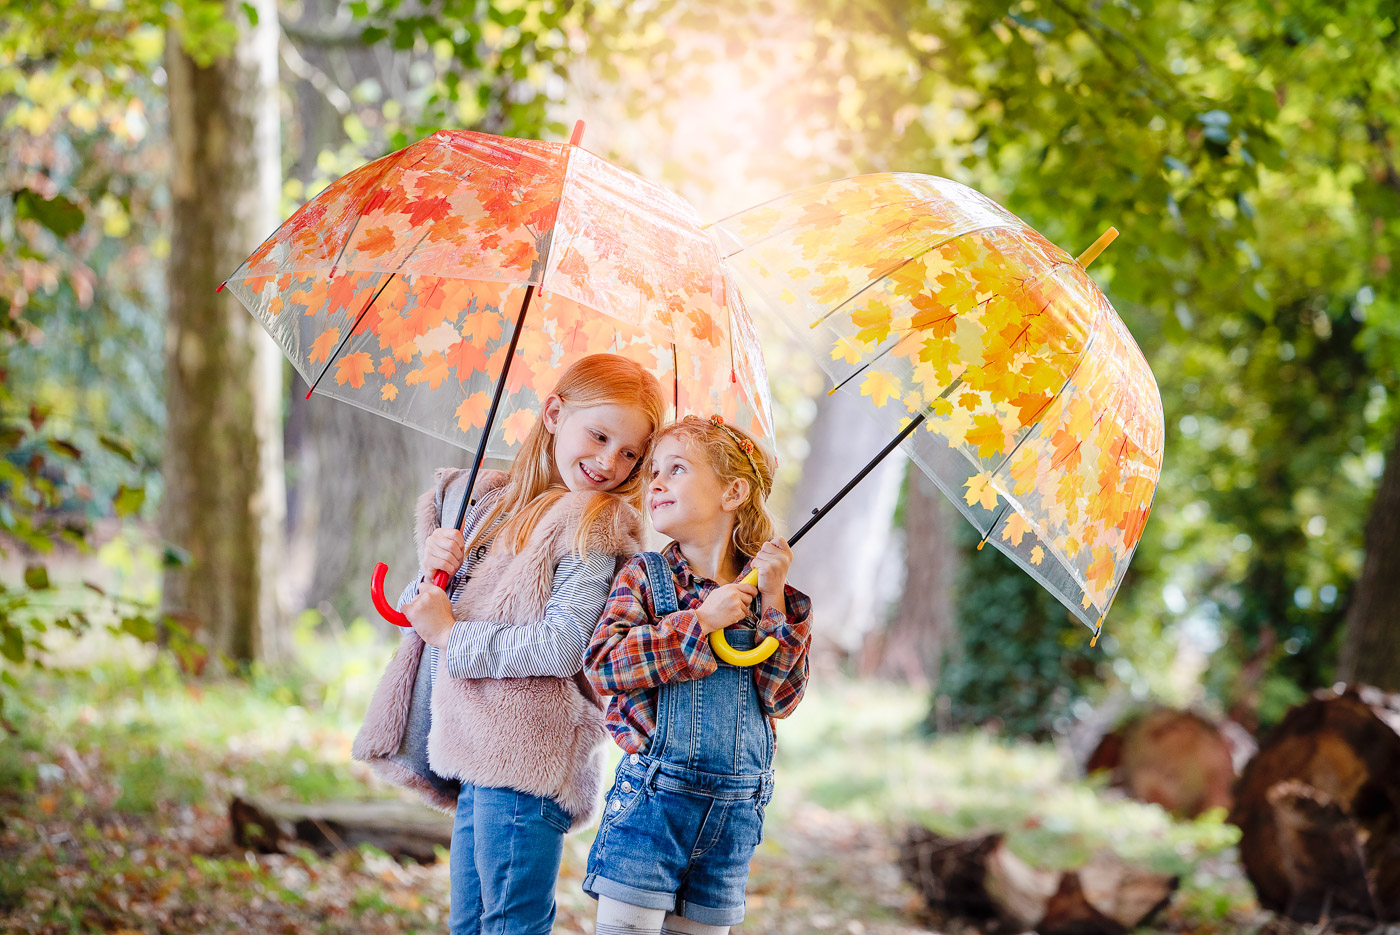 Lovely young sisters looking at each other and holding umbrellas with yellow and orange leaves